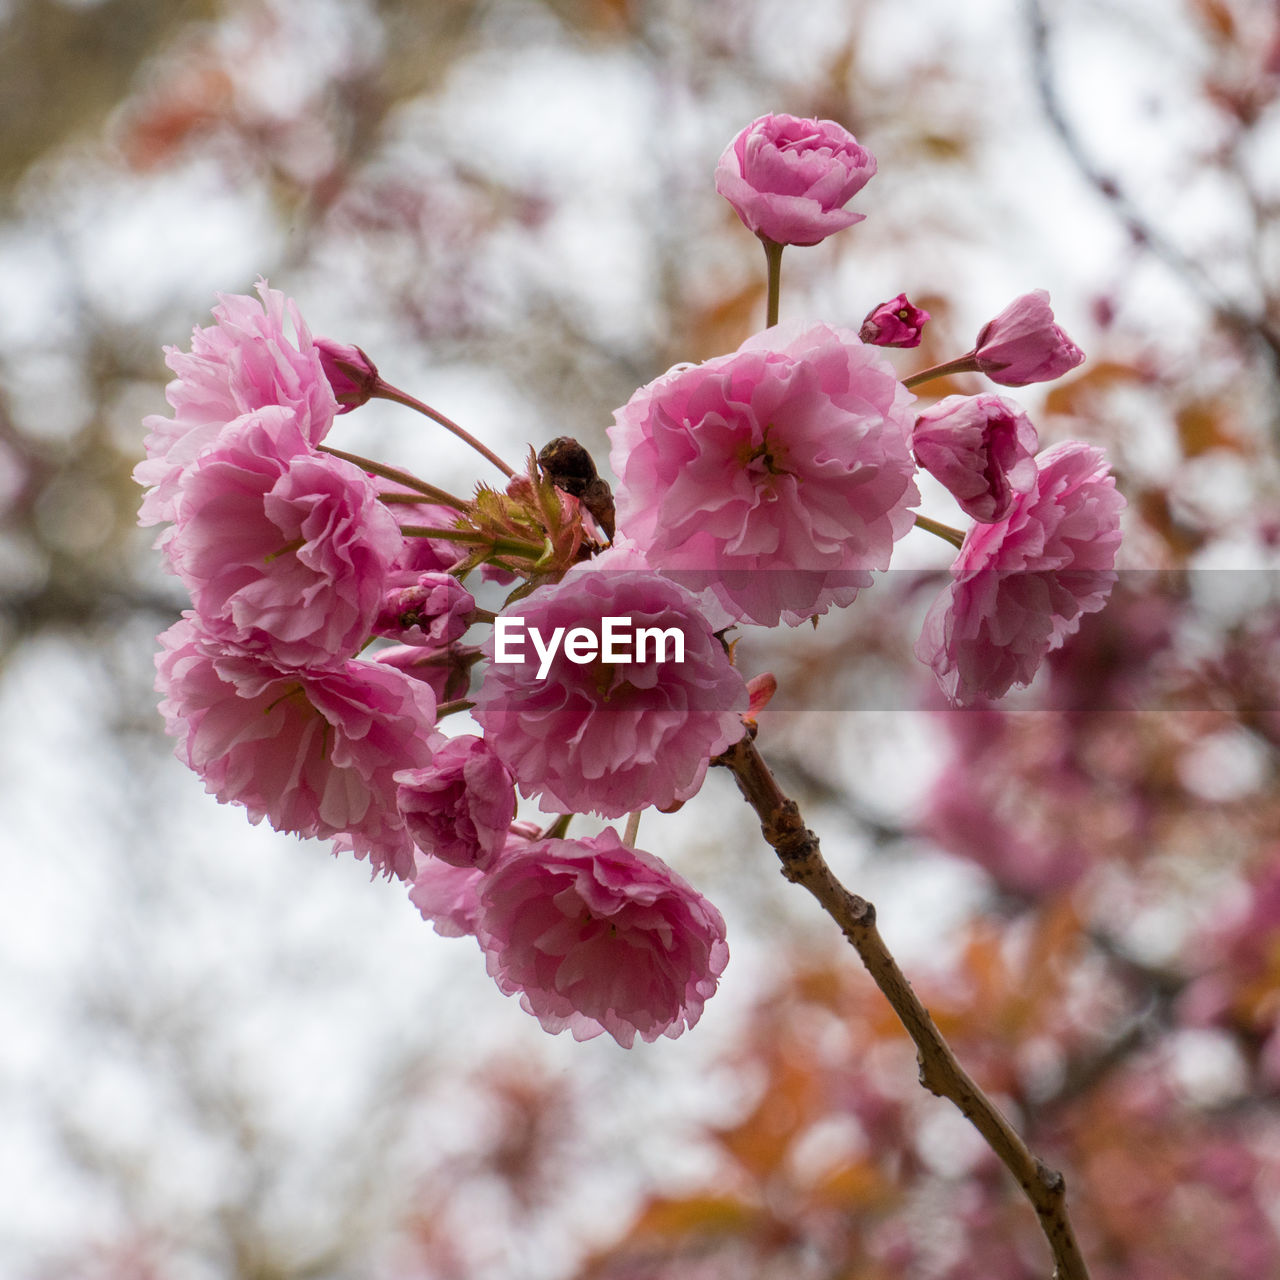 flower, flowering plant, pink color, fragility, plant, freshness, growth, vulnerability, beauty in nature, close-up, branch, tree, blossom, petal, springtime, no people, nature, cherry blossom, day, inflorescence, flower head, cherry tree, outdoors, pollen, plum blossom, spring